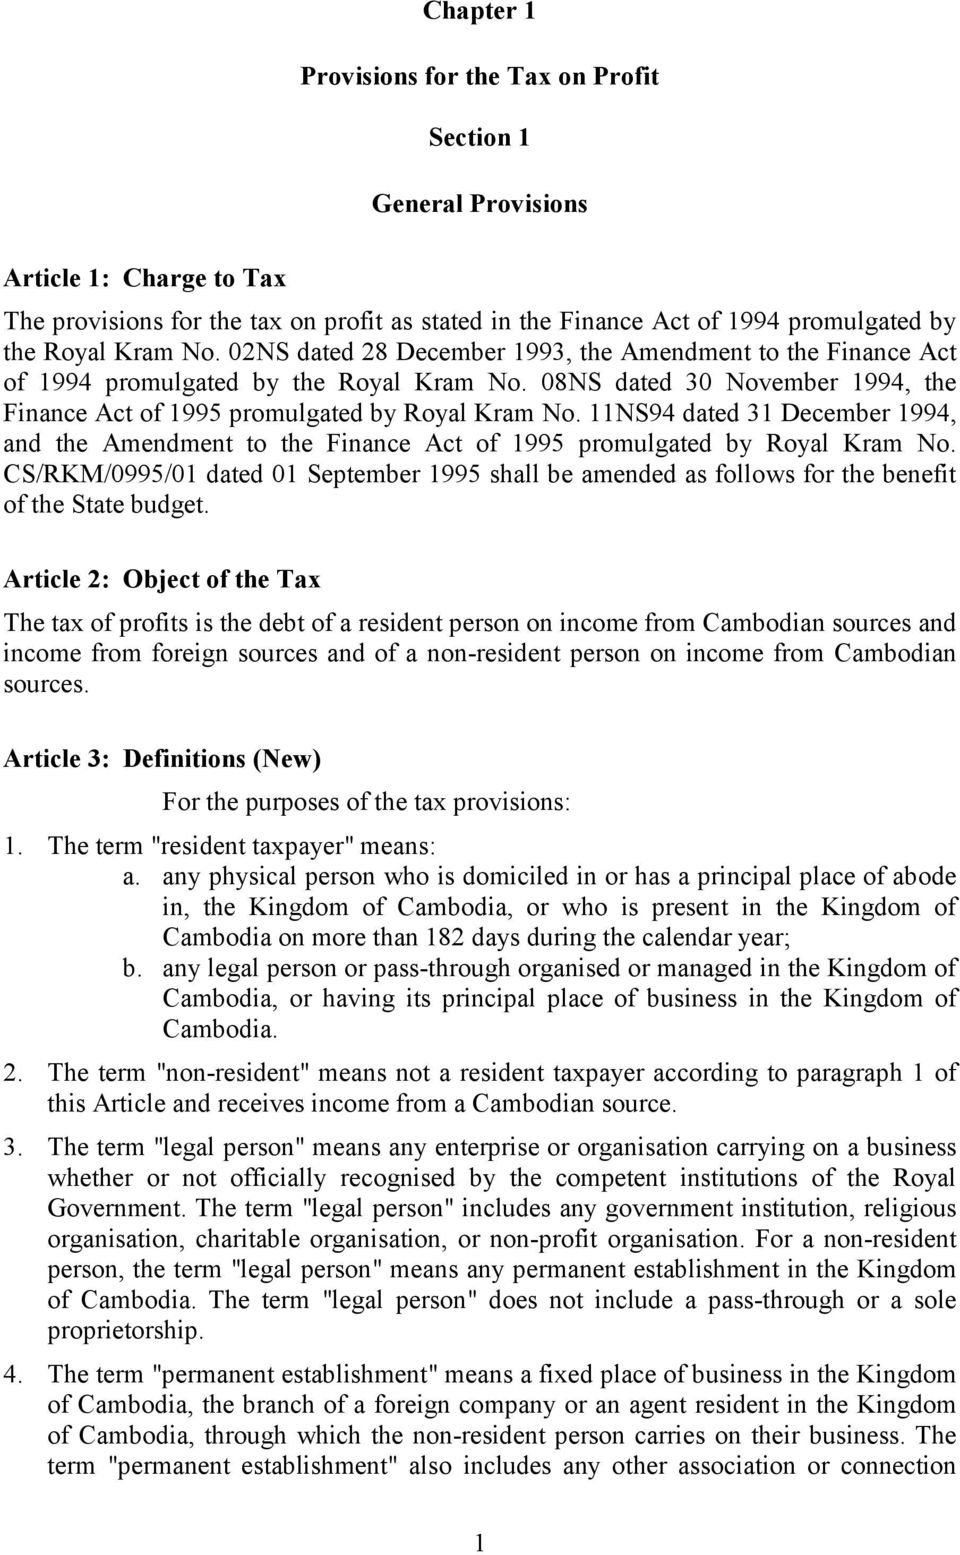 11NS94 dated 31 December 1994, and the Amendment to the Finance Act of 1995 promulgated by Royal Kram No.